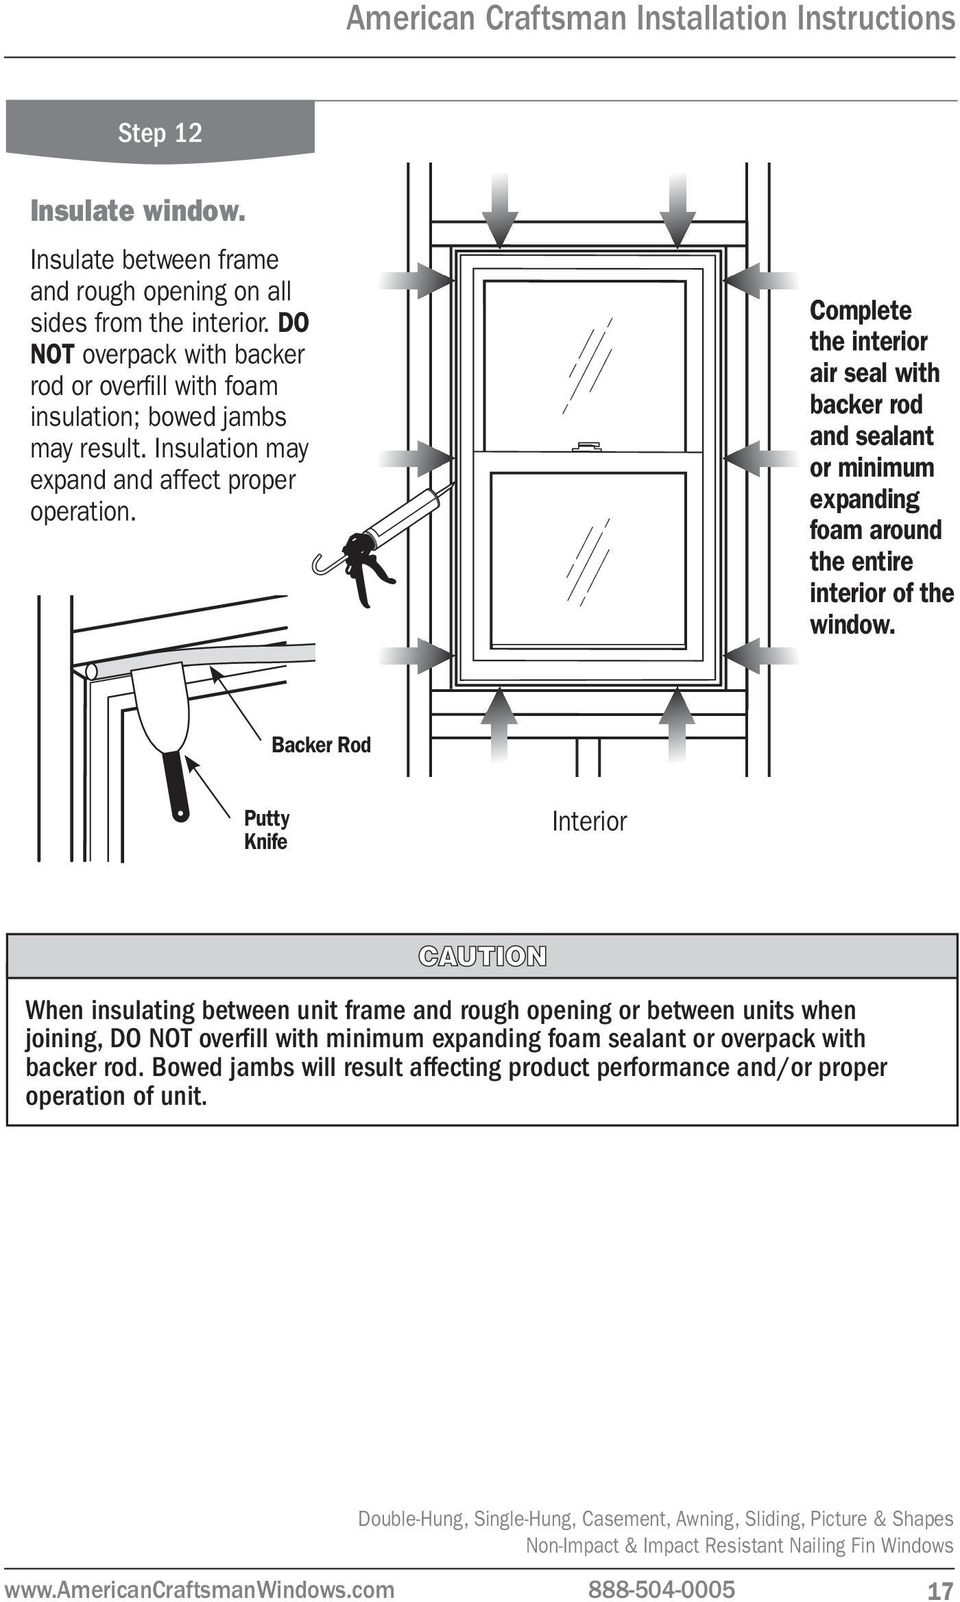 Complete the interior air seal with backer rod and sealant or minimum expanding foam around the entire interior of the window.